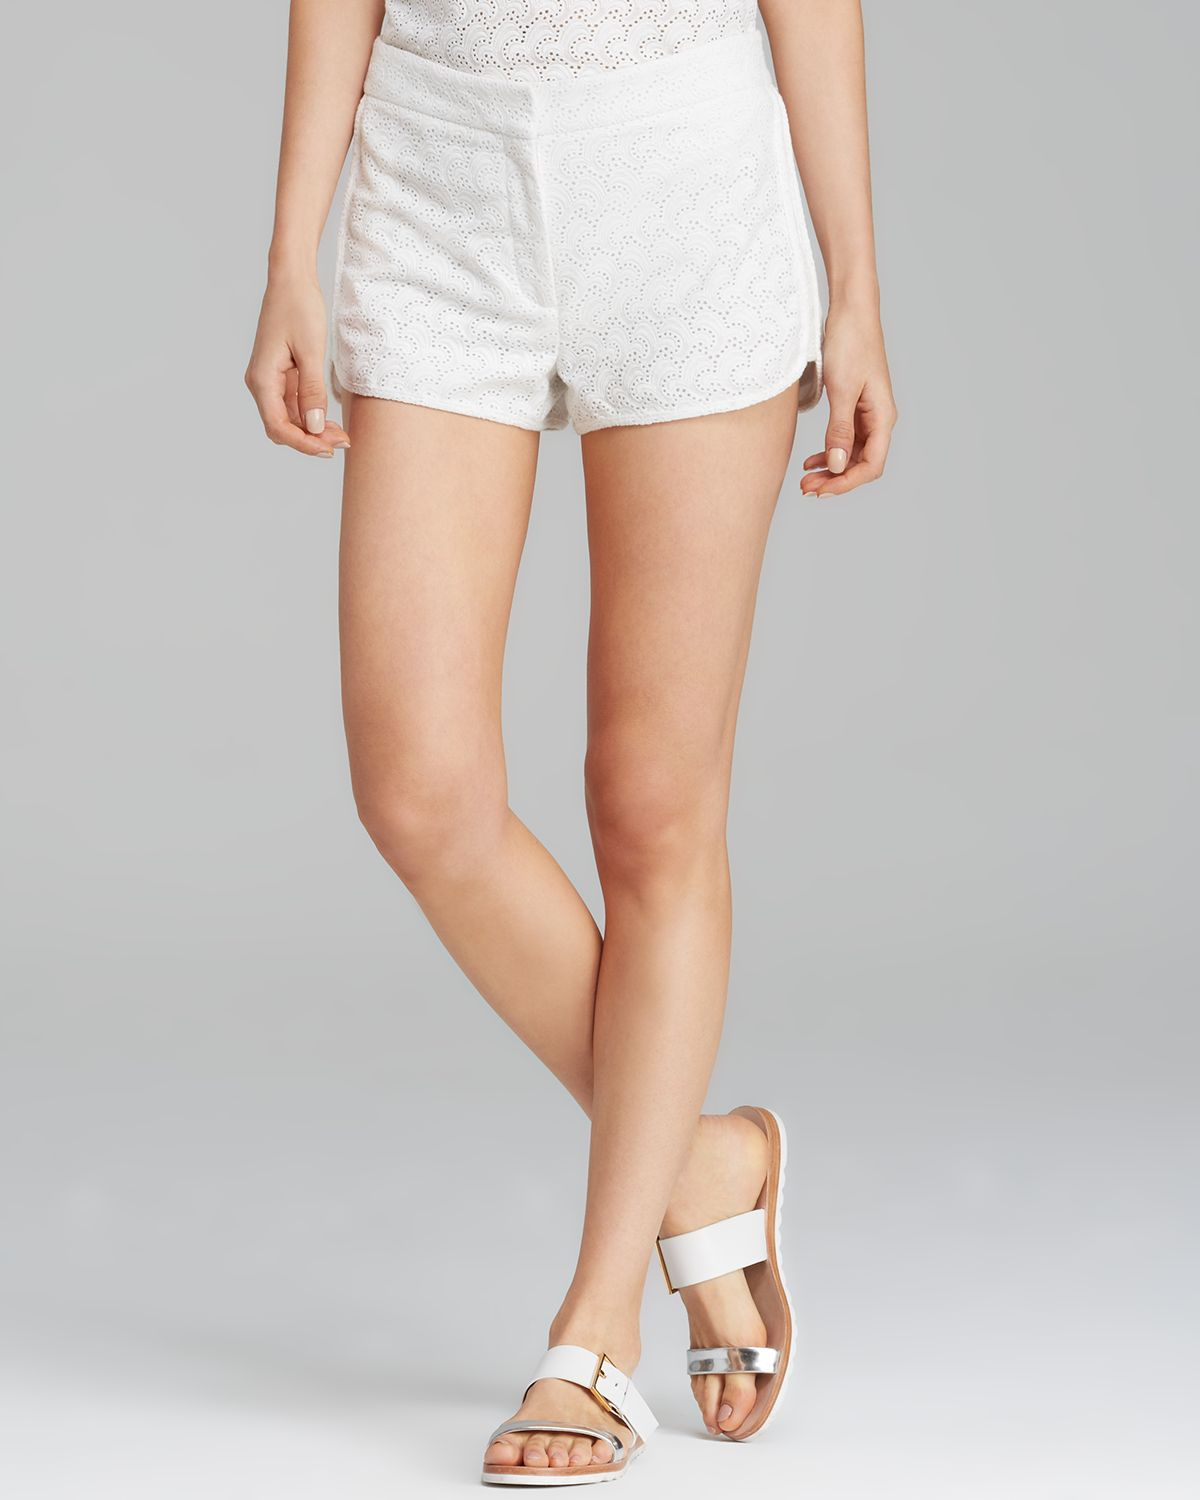 f29334bff96 Theory Shorts - Nadrea Ellice in White - Lyst